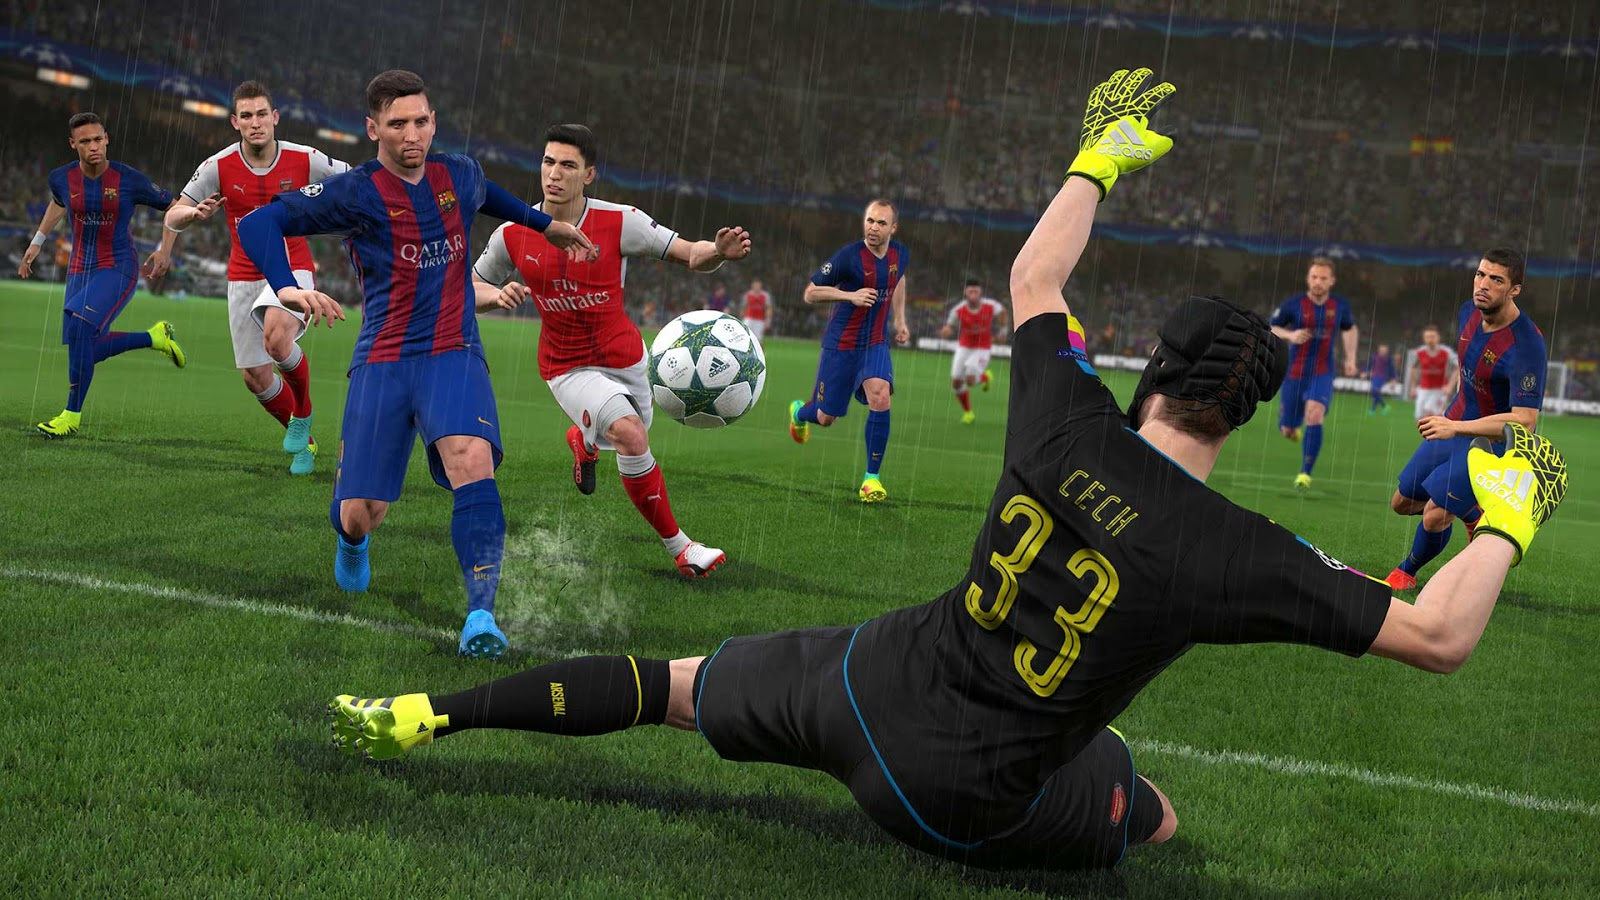 Download Latest PES 2017 ISO PSP File On Android - UcheTechs